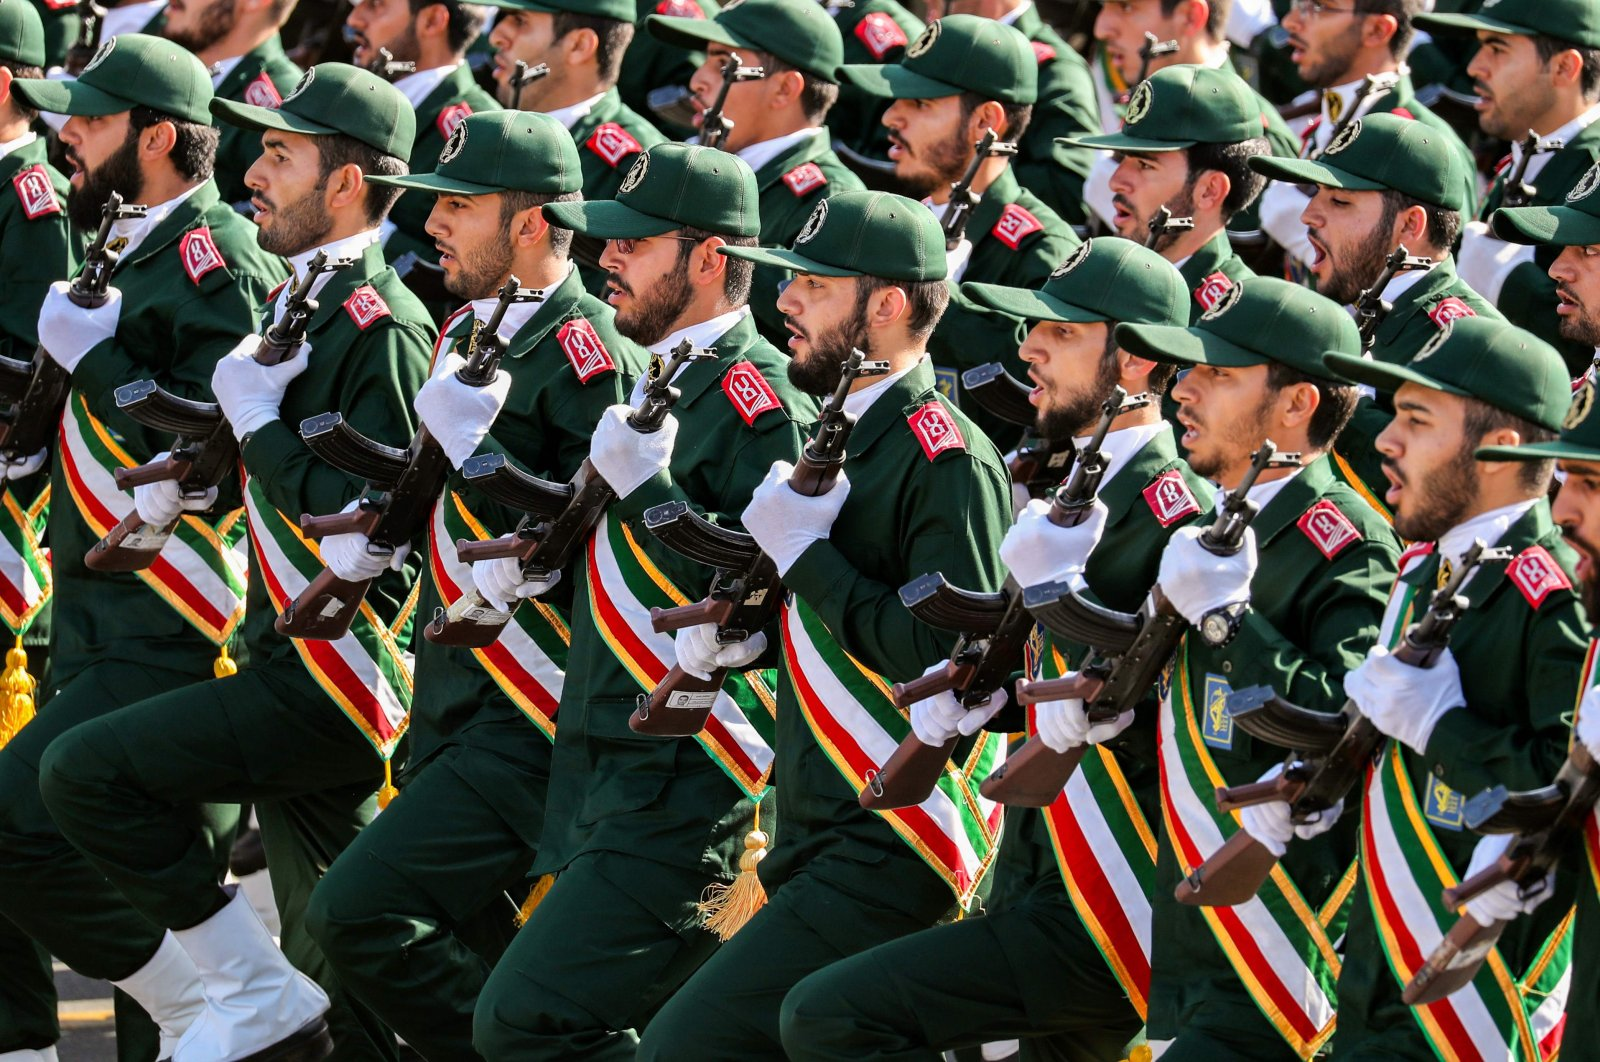 This Sept. 22, 2018, file photo shows members of Iran's Revolutionary Guards Corps (IRGC) march during the annual military parade marking the anniversary of the outbreak of the devastating 1980-1988 war with Iraq, in Tehran, Iran. (AFP Photo)